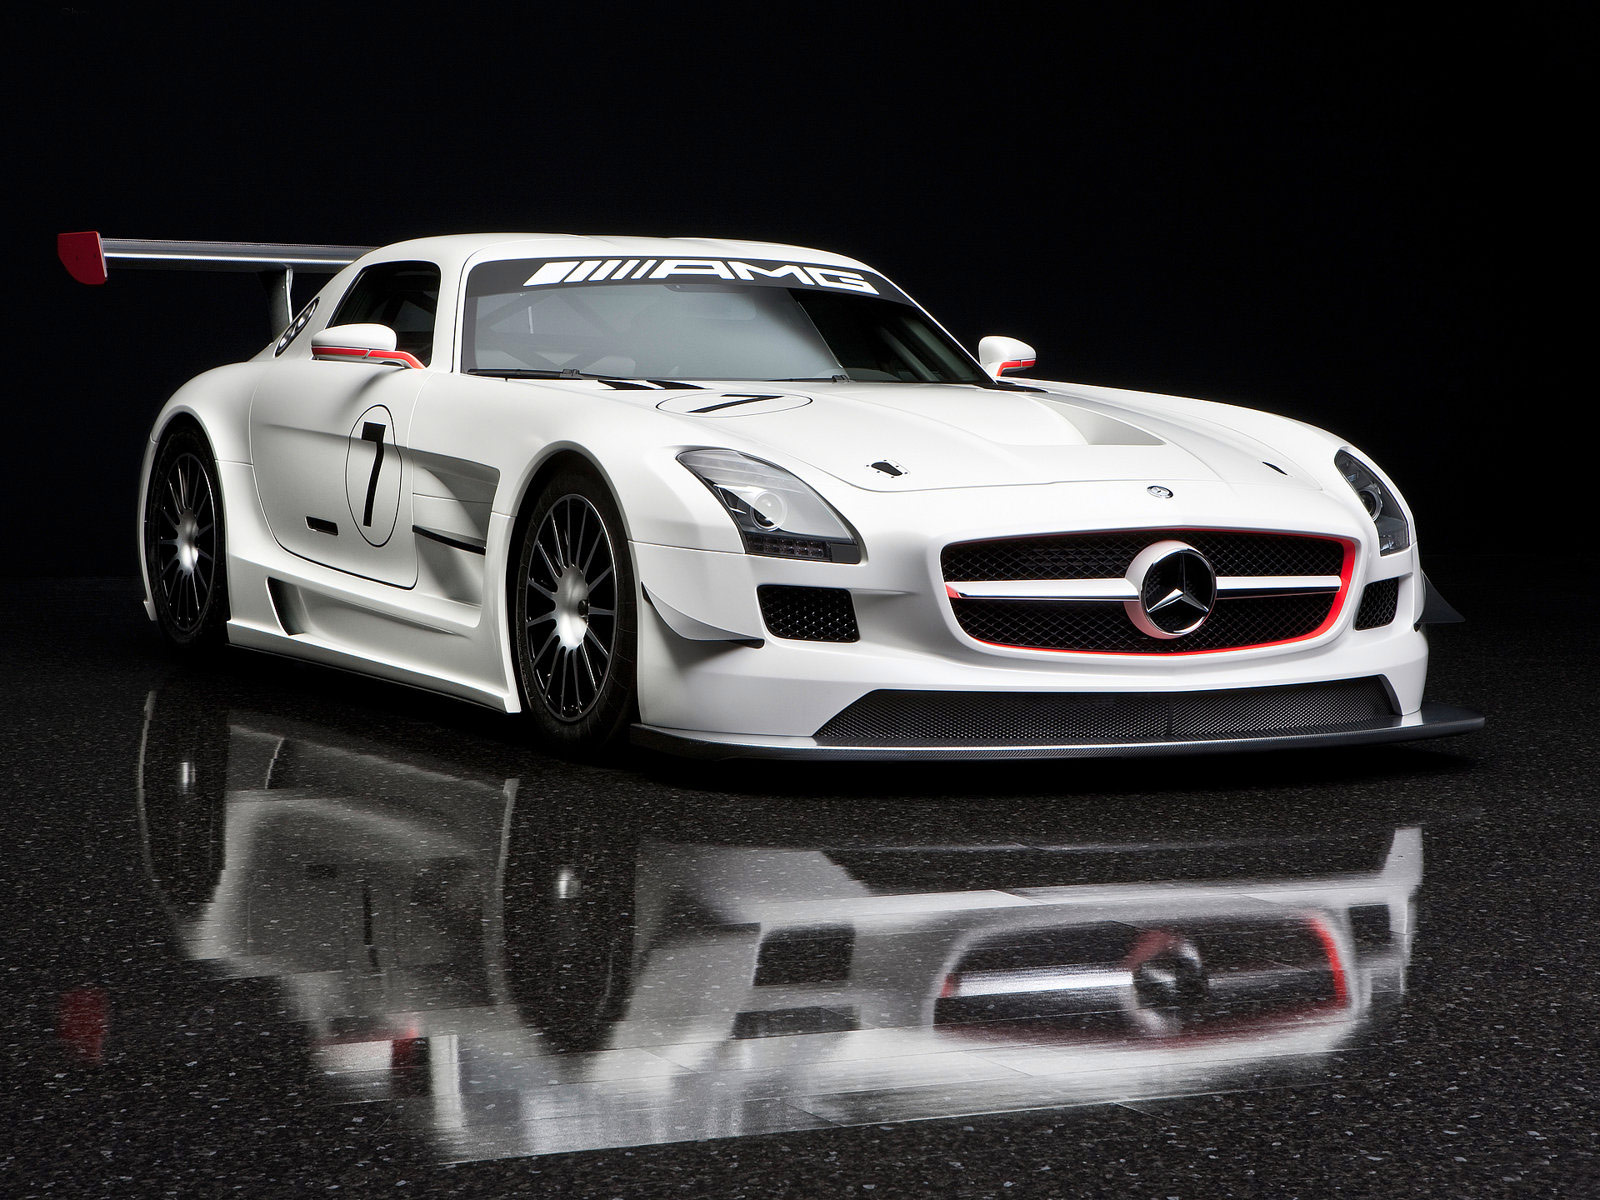 2011 mercedes benz sls amg gt3 car wallpaper. Black Bedroom Furniture Sets. Home Design Ideas